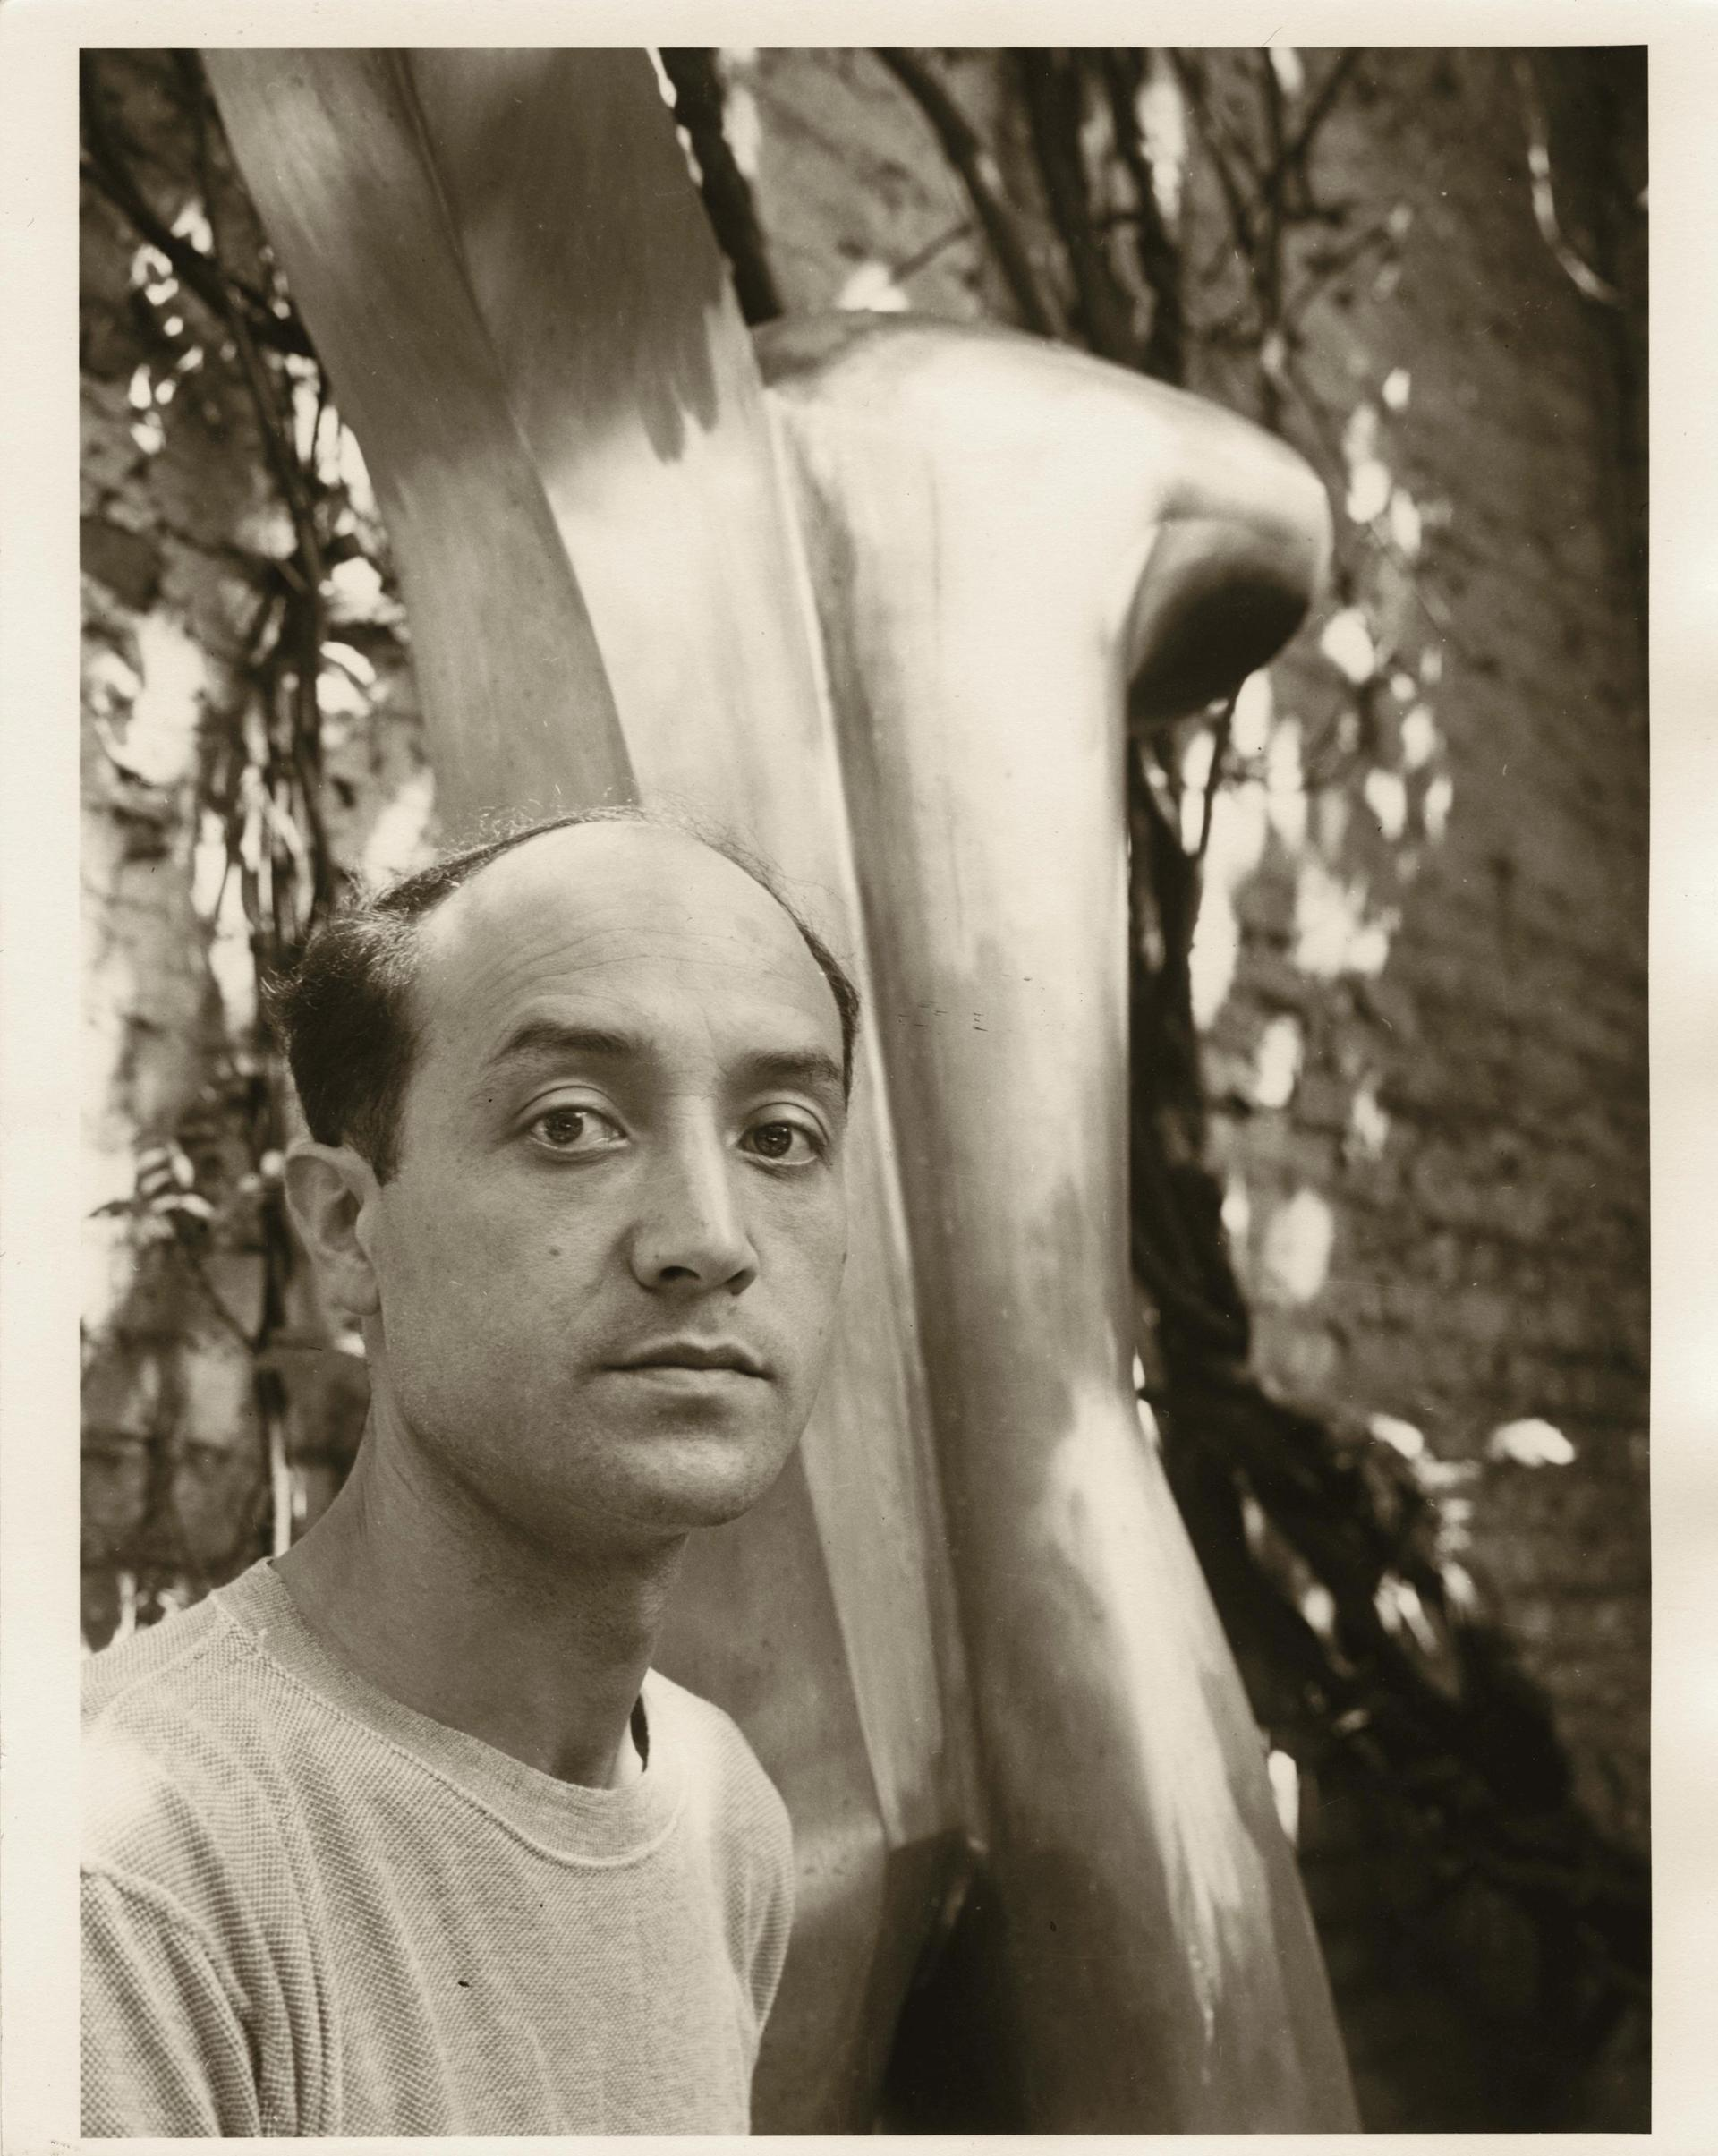 Isamu Noguchi in the courtyard of his MacDougal alley studio with Man Aviator (1943-49) © The Isamu Noguchi Foundation and Garden Museum, New York/ARS. Photo by Gina Hohensee